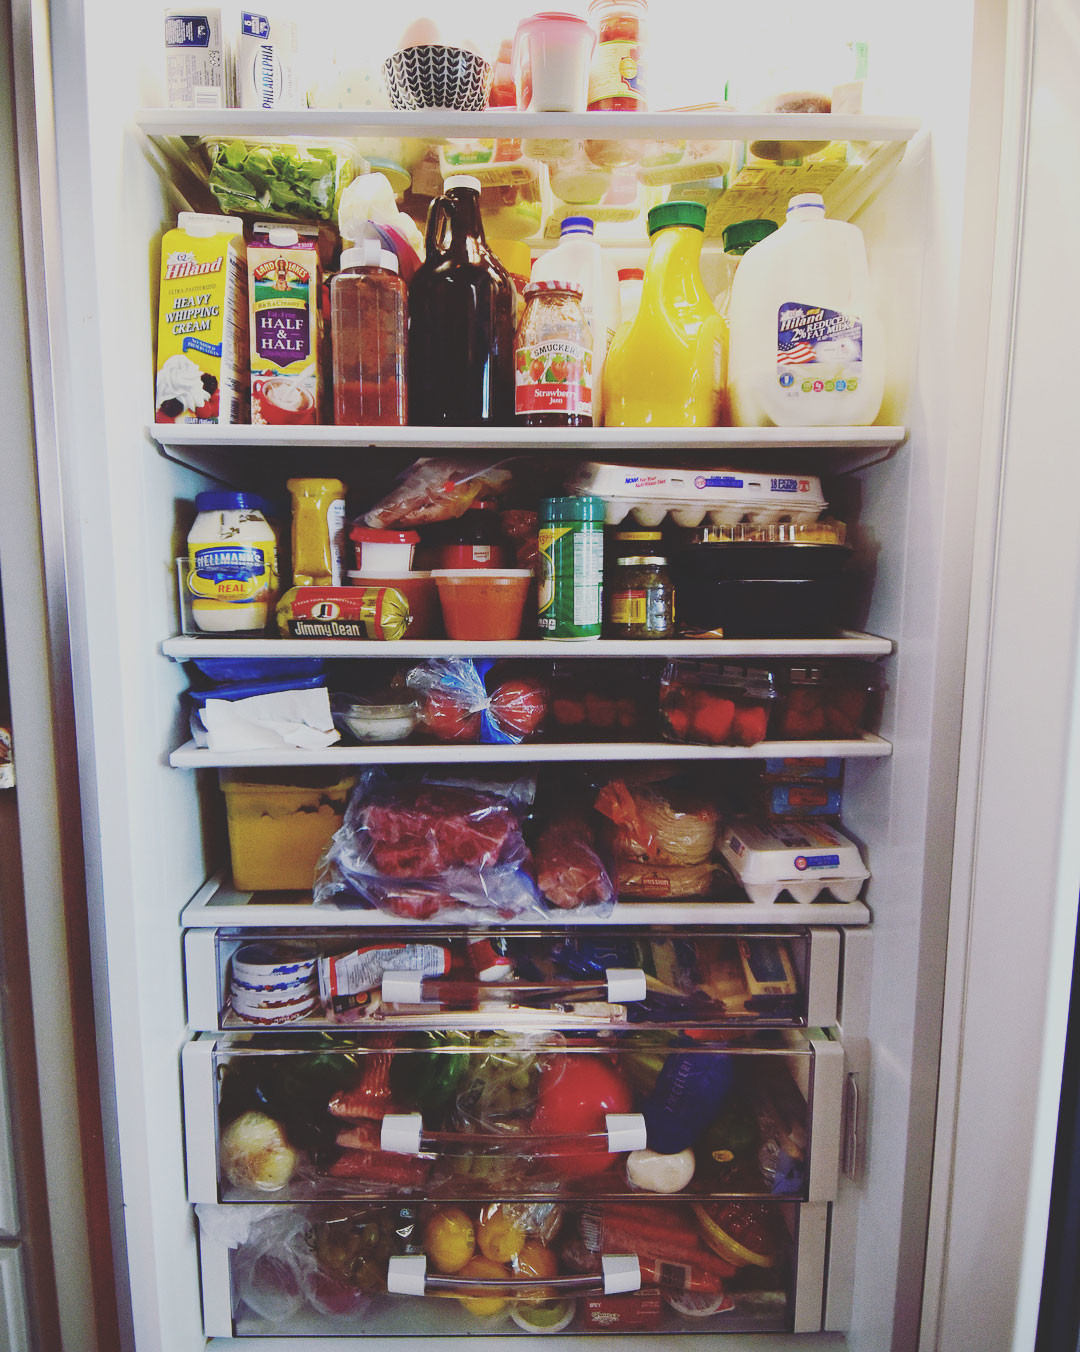 Pioneer Woman Ree Drummond Shows Off Her Stunning Post-Holiday Refrigerator Transformation